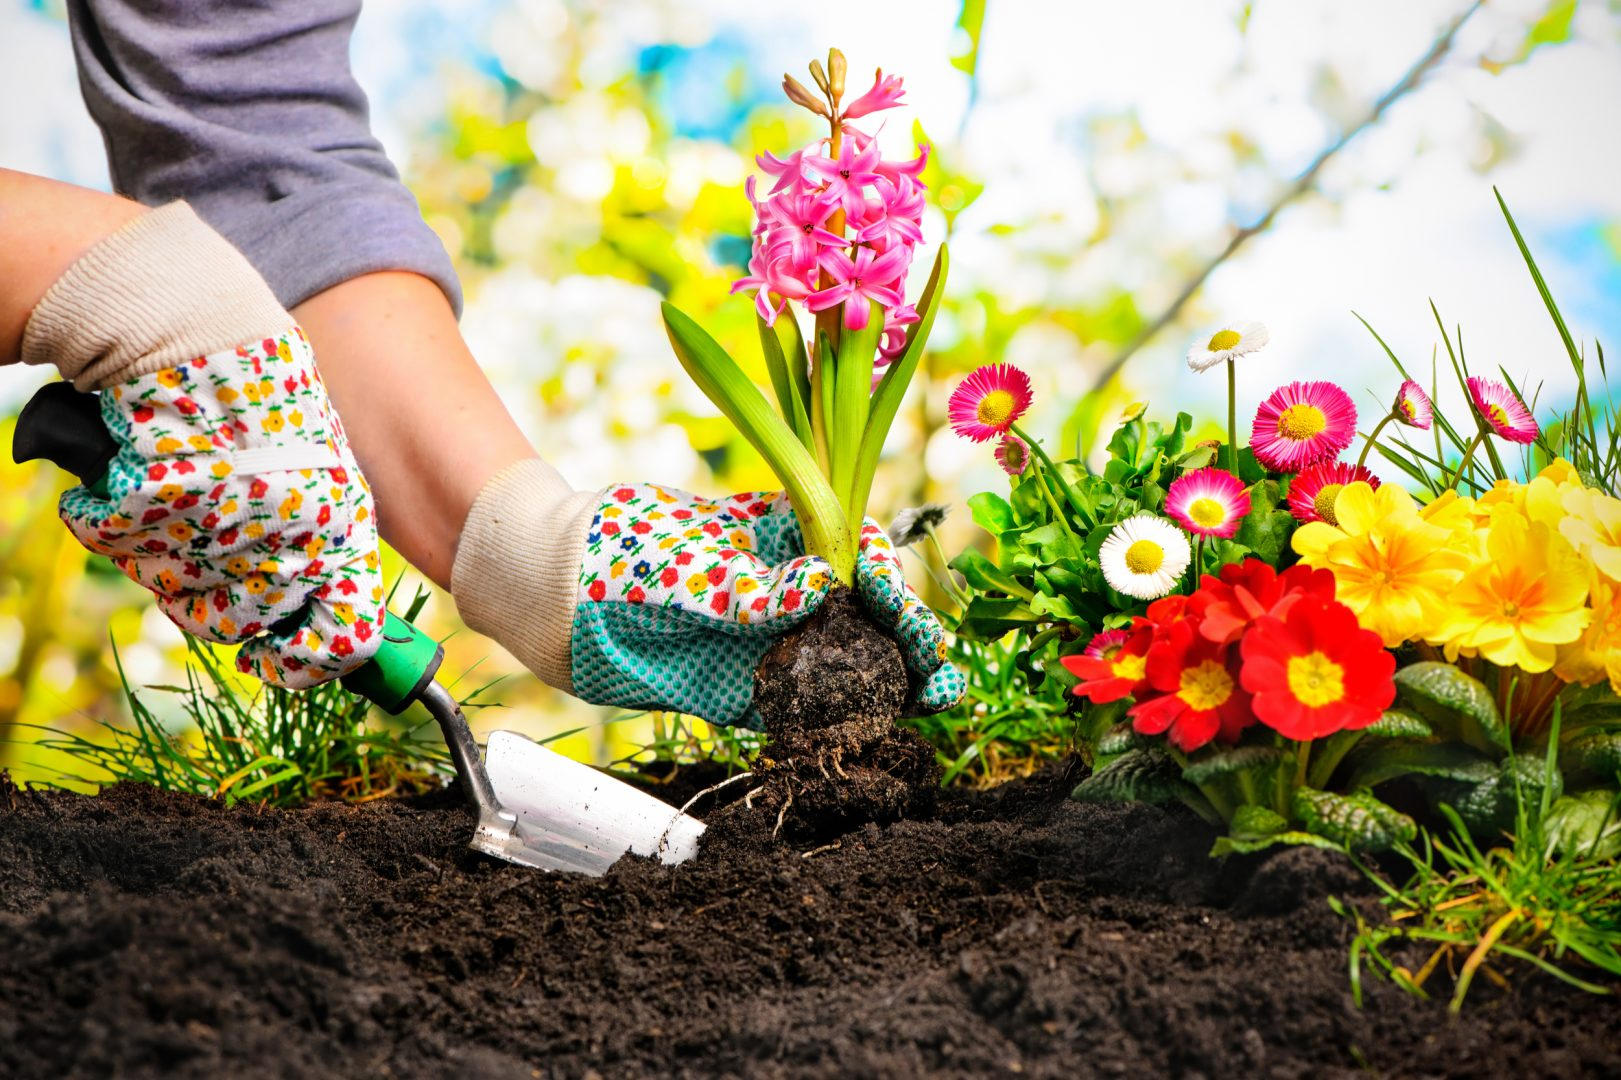 Pest Control For North Richland Hills Gardening